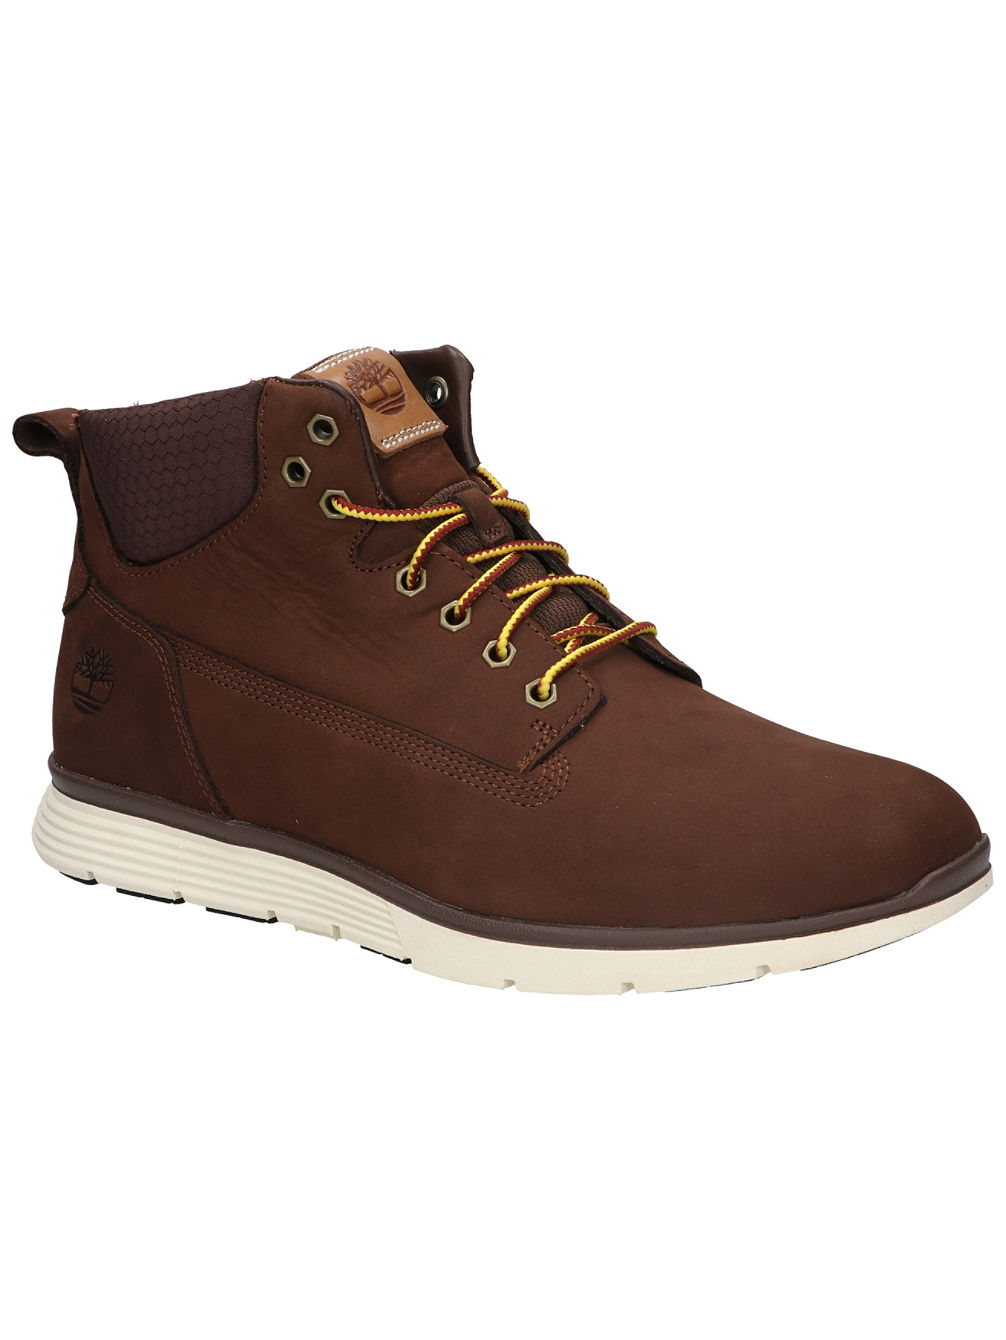 af92a3a668ca39 Buy Timberland Killington Chukka Shoes online at Blue Tomato